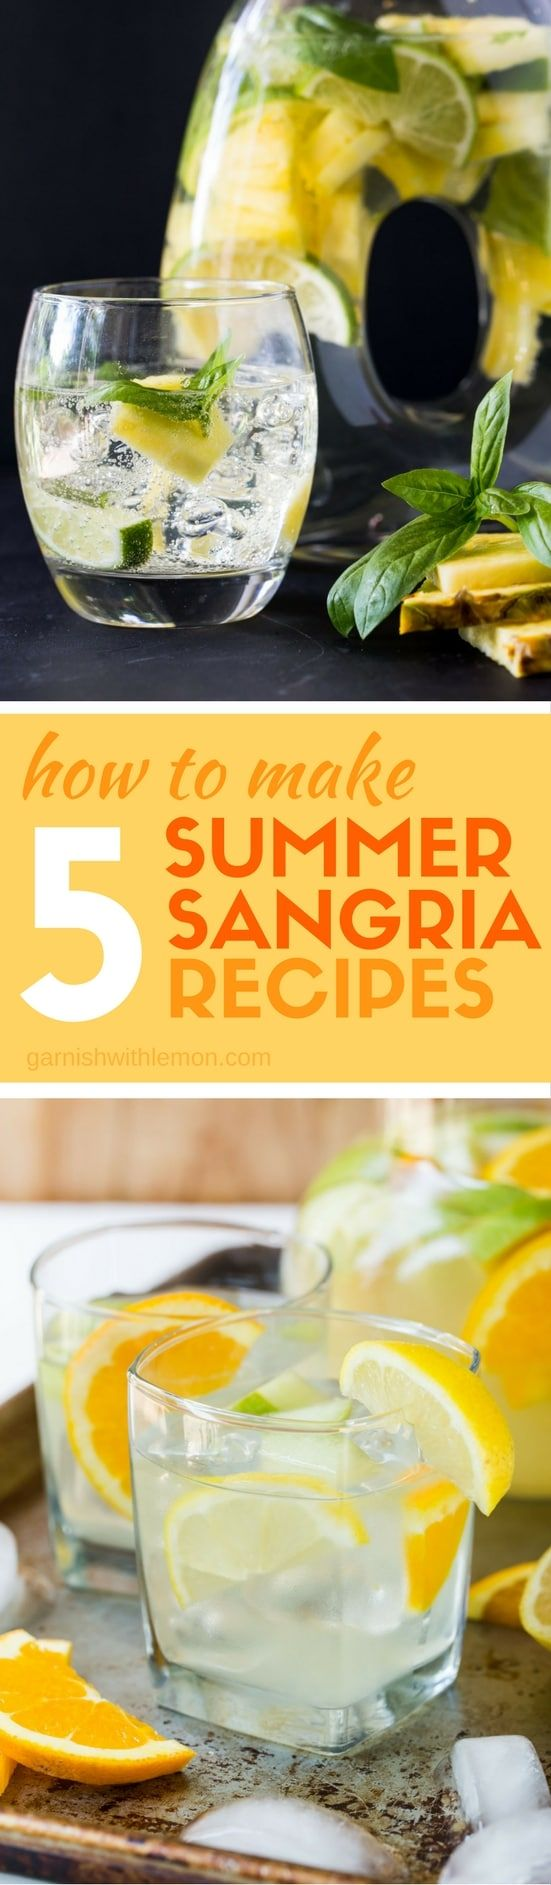 Not sure how to make sangria? Check out our tips for how to make 5 Easy Summer Sangria Recipes!